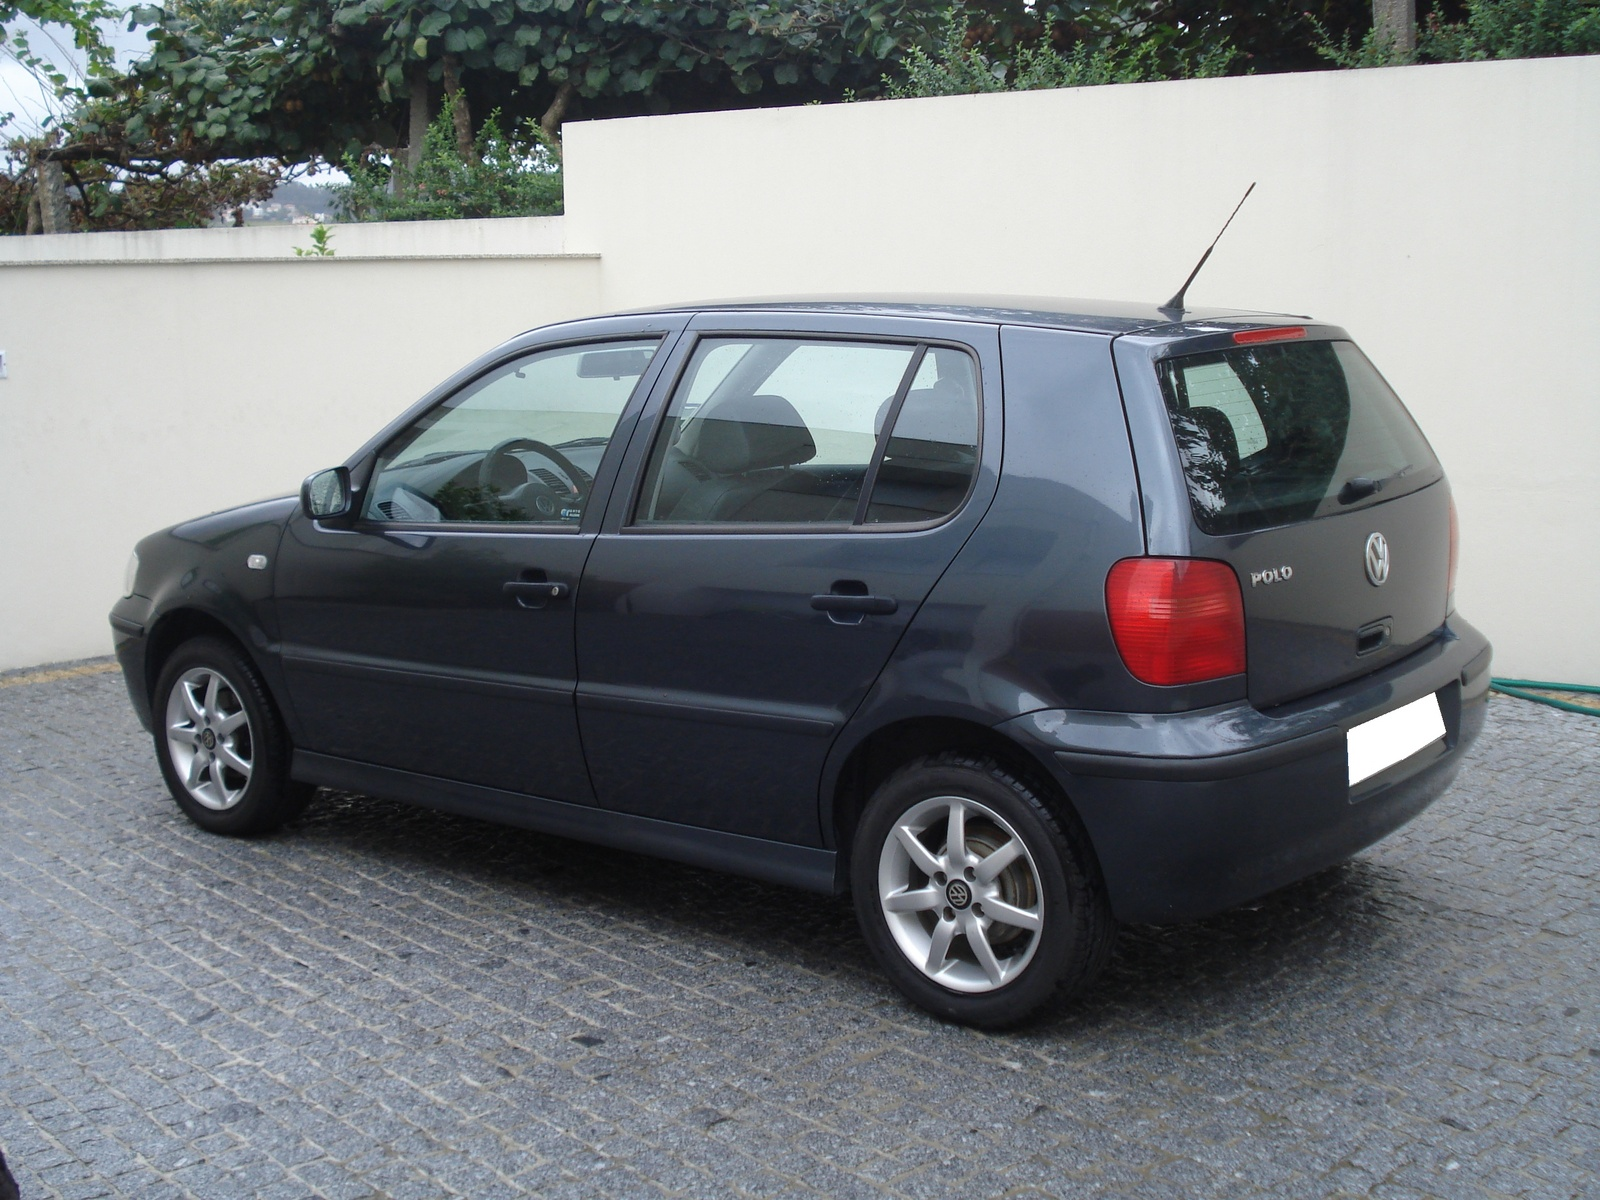 Volkswagen Polo 1.9 2000 photo - 1